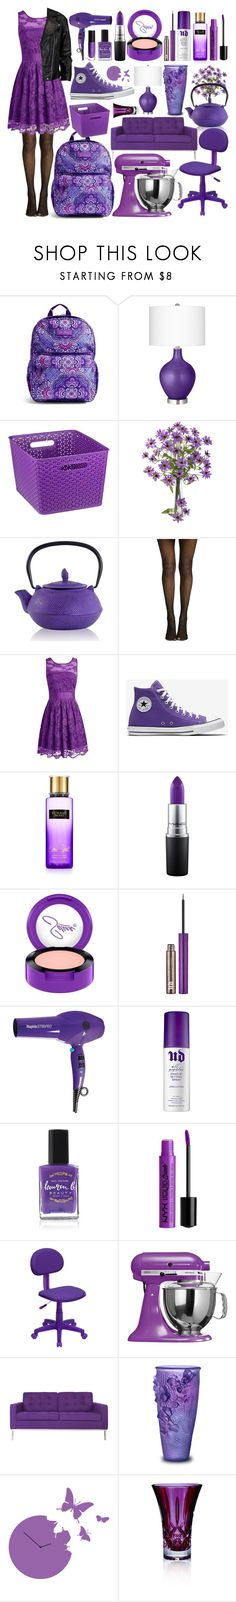 """""""💜💜💜"""" by canarybees ❤ liked on Polyvore featuring Vera Bradley, Home Basics, ShoeDazzle, MAC Cosmetics, Urban Decay, Lauren B. Beauty, NYX, Flash Furniture, KitchenAid and Somette"""